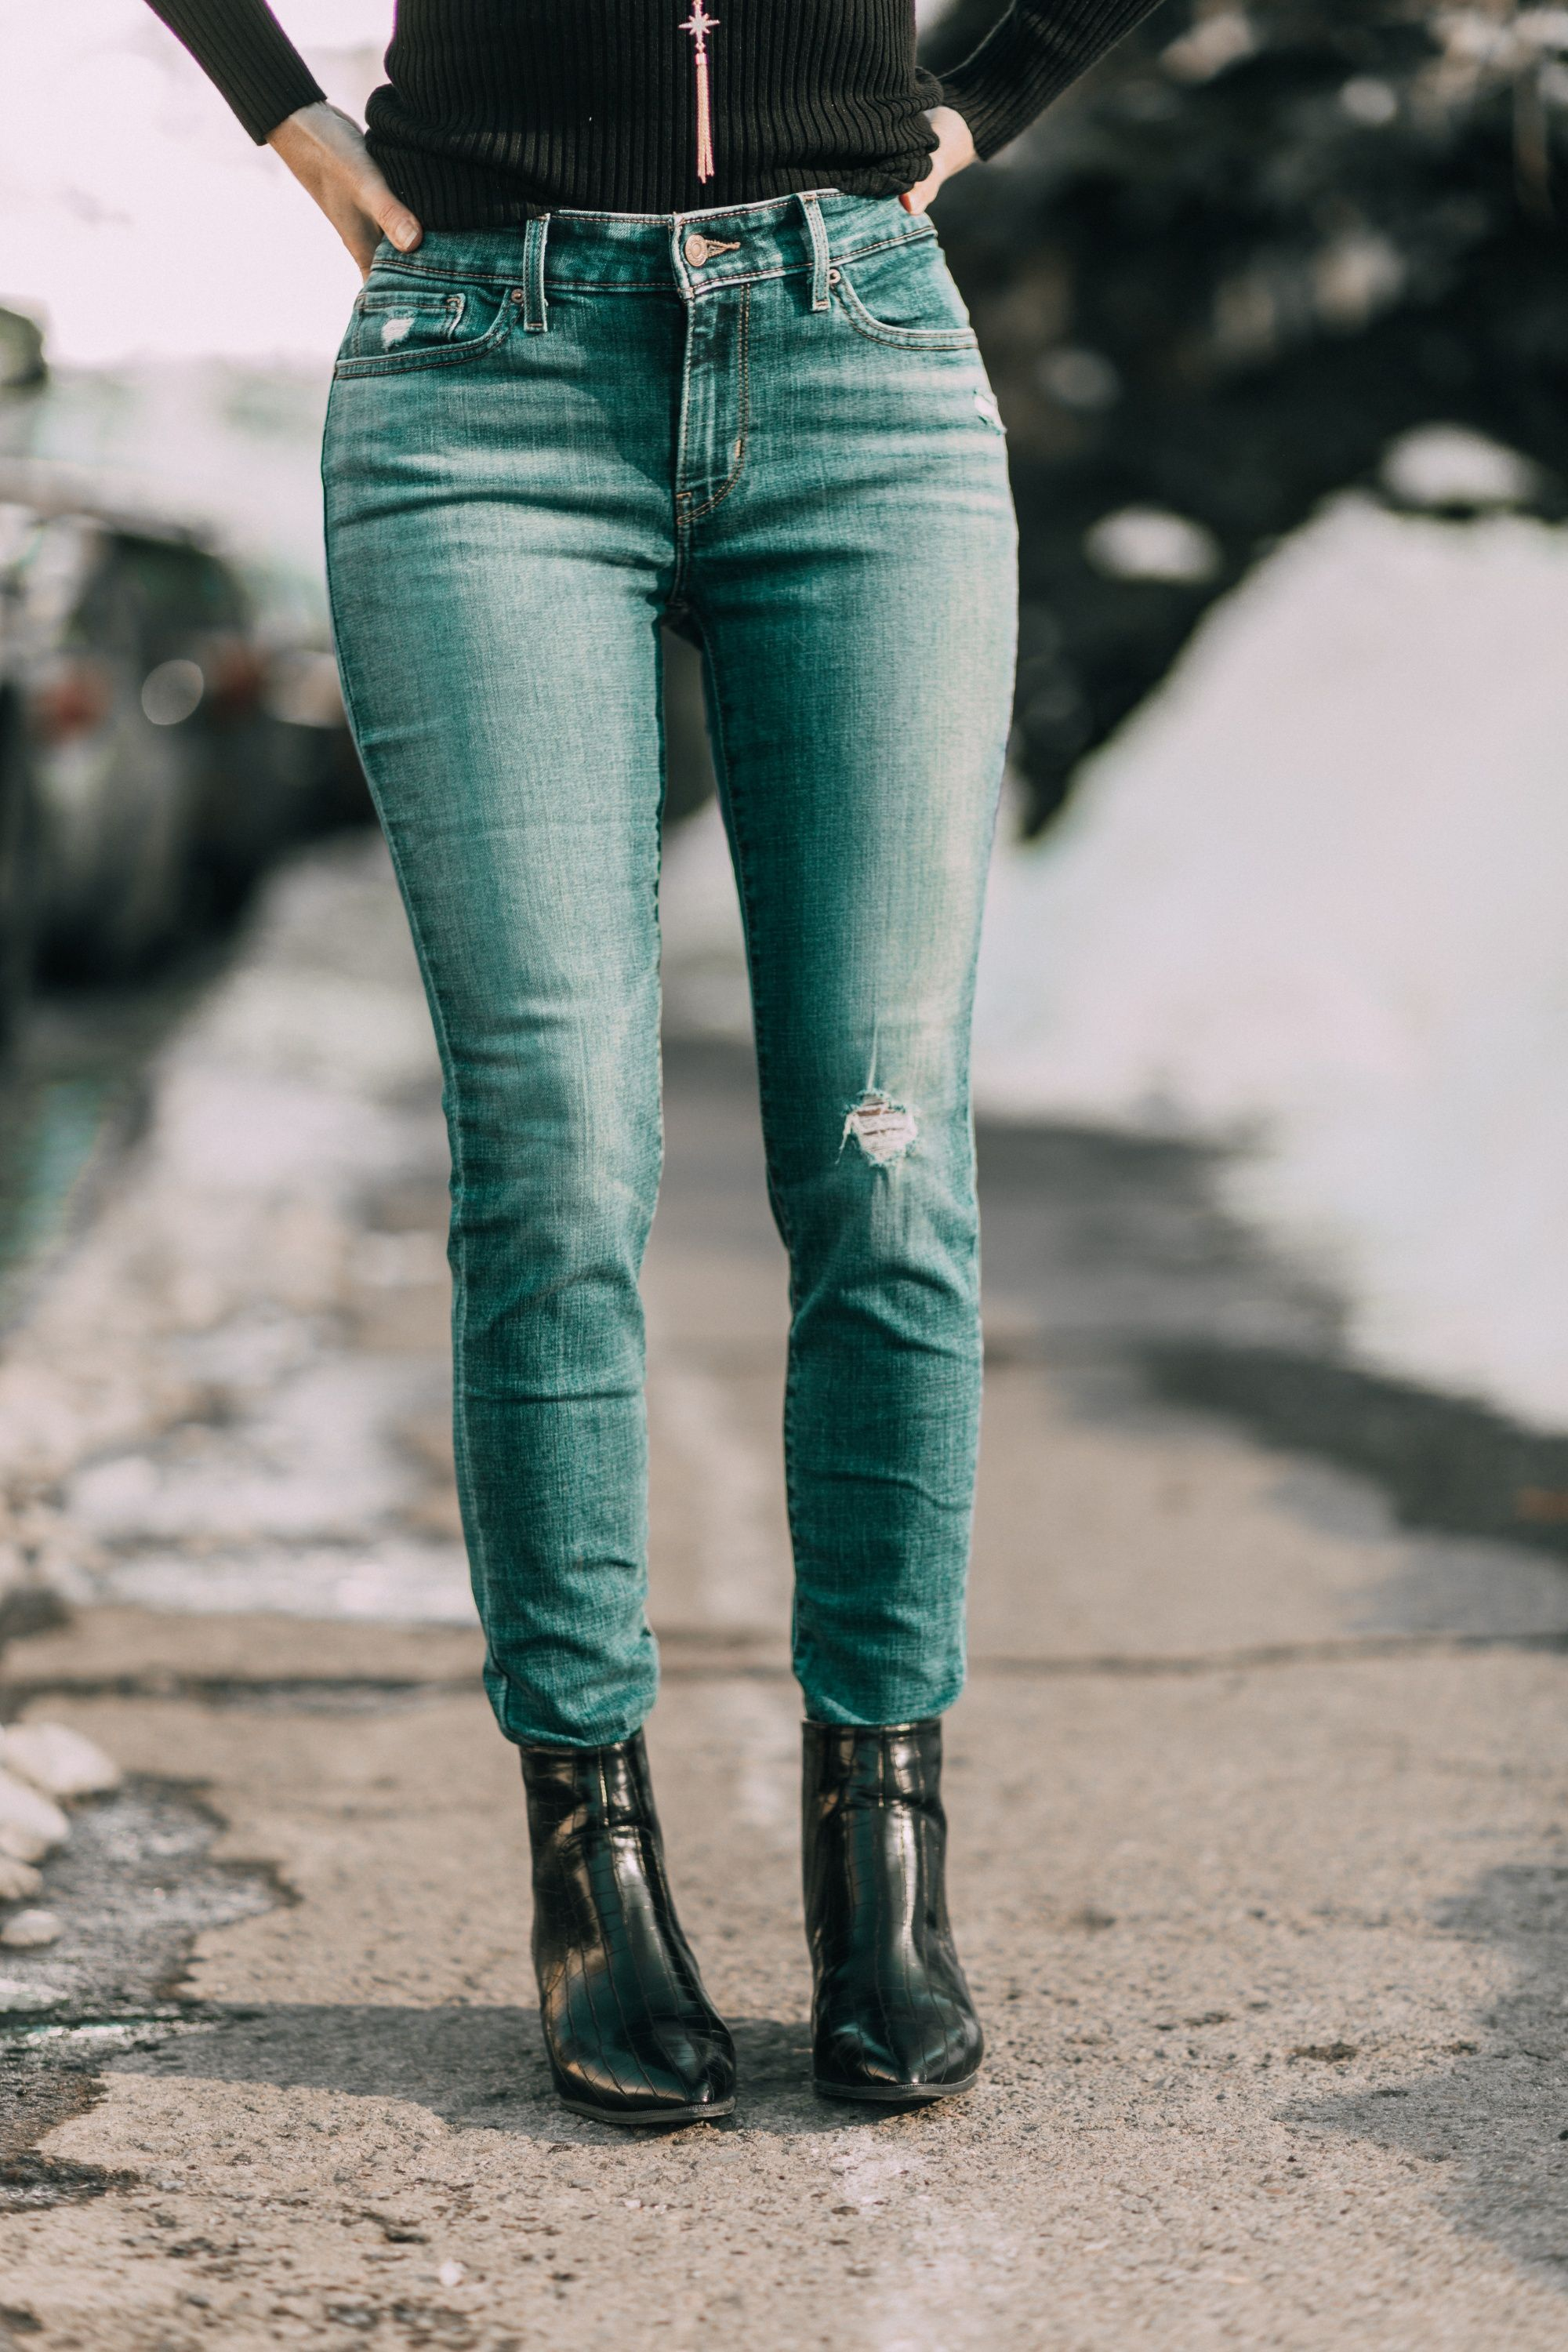 3 Exciting Levi Jeans That Are Affordable! | Busbee style